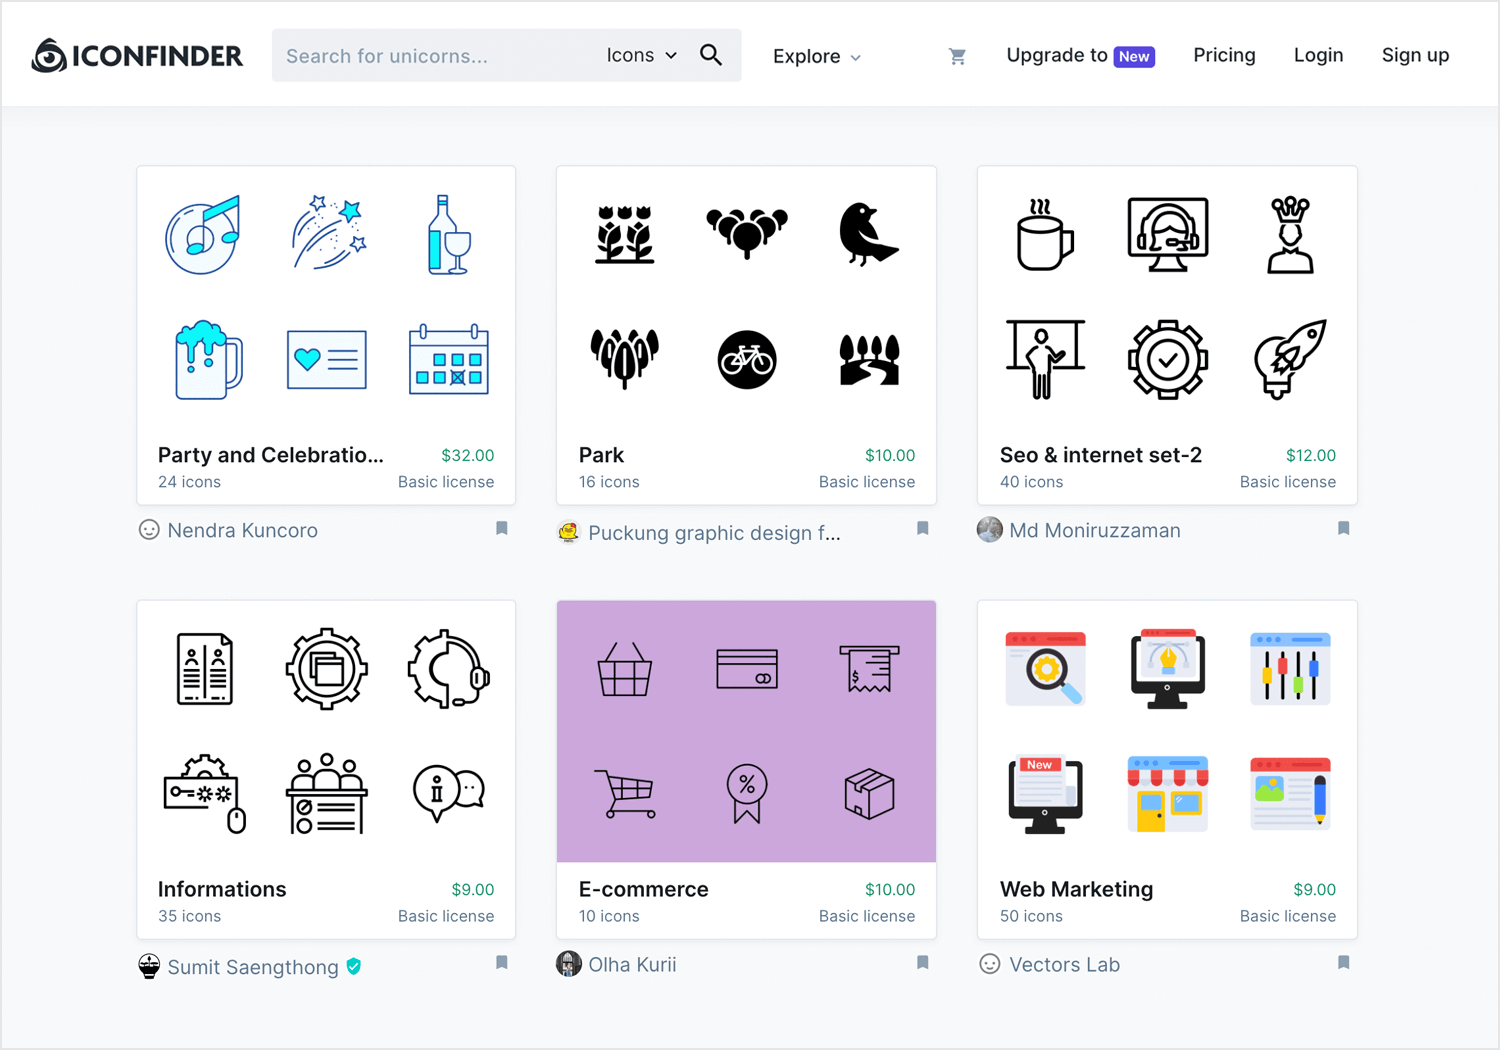 Free website icons to download - Iconfinder